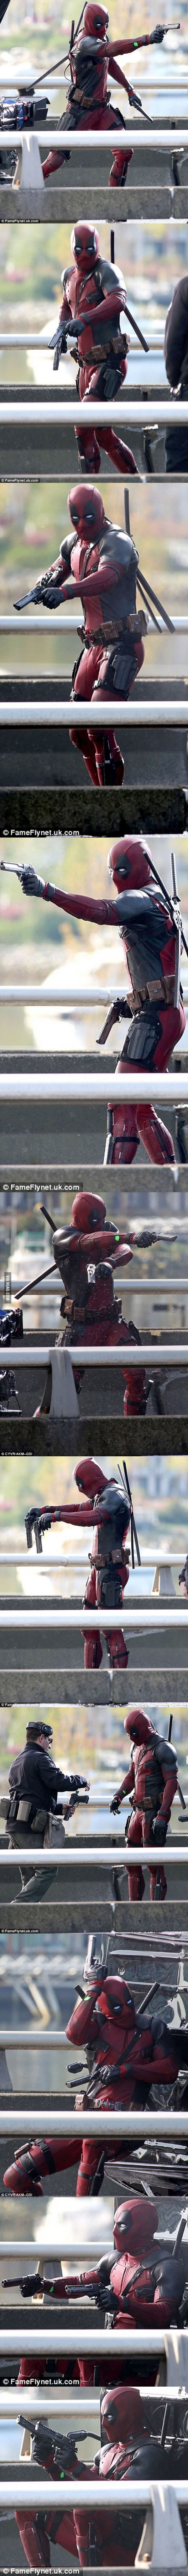 Filming of the Deadpool movie has begun!<---holy crap on a cracker are you shitting me?!! [Sorry for the language but I'm literally screaming rn]